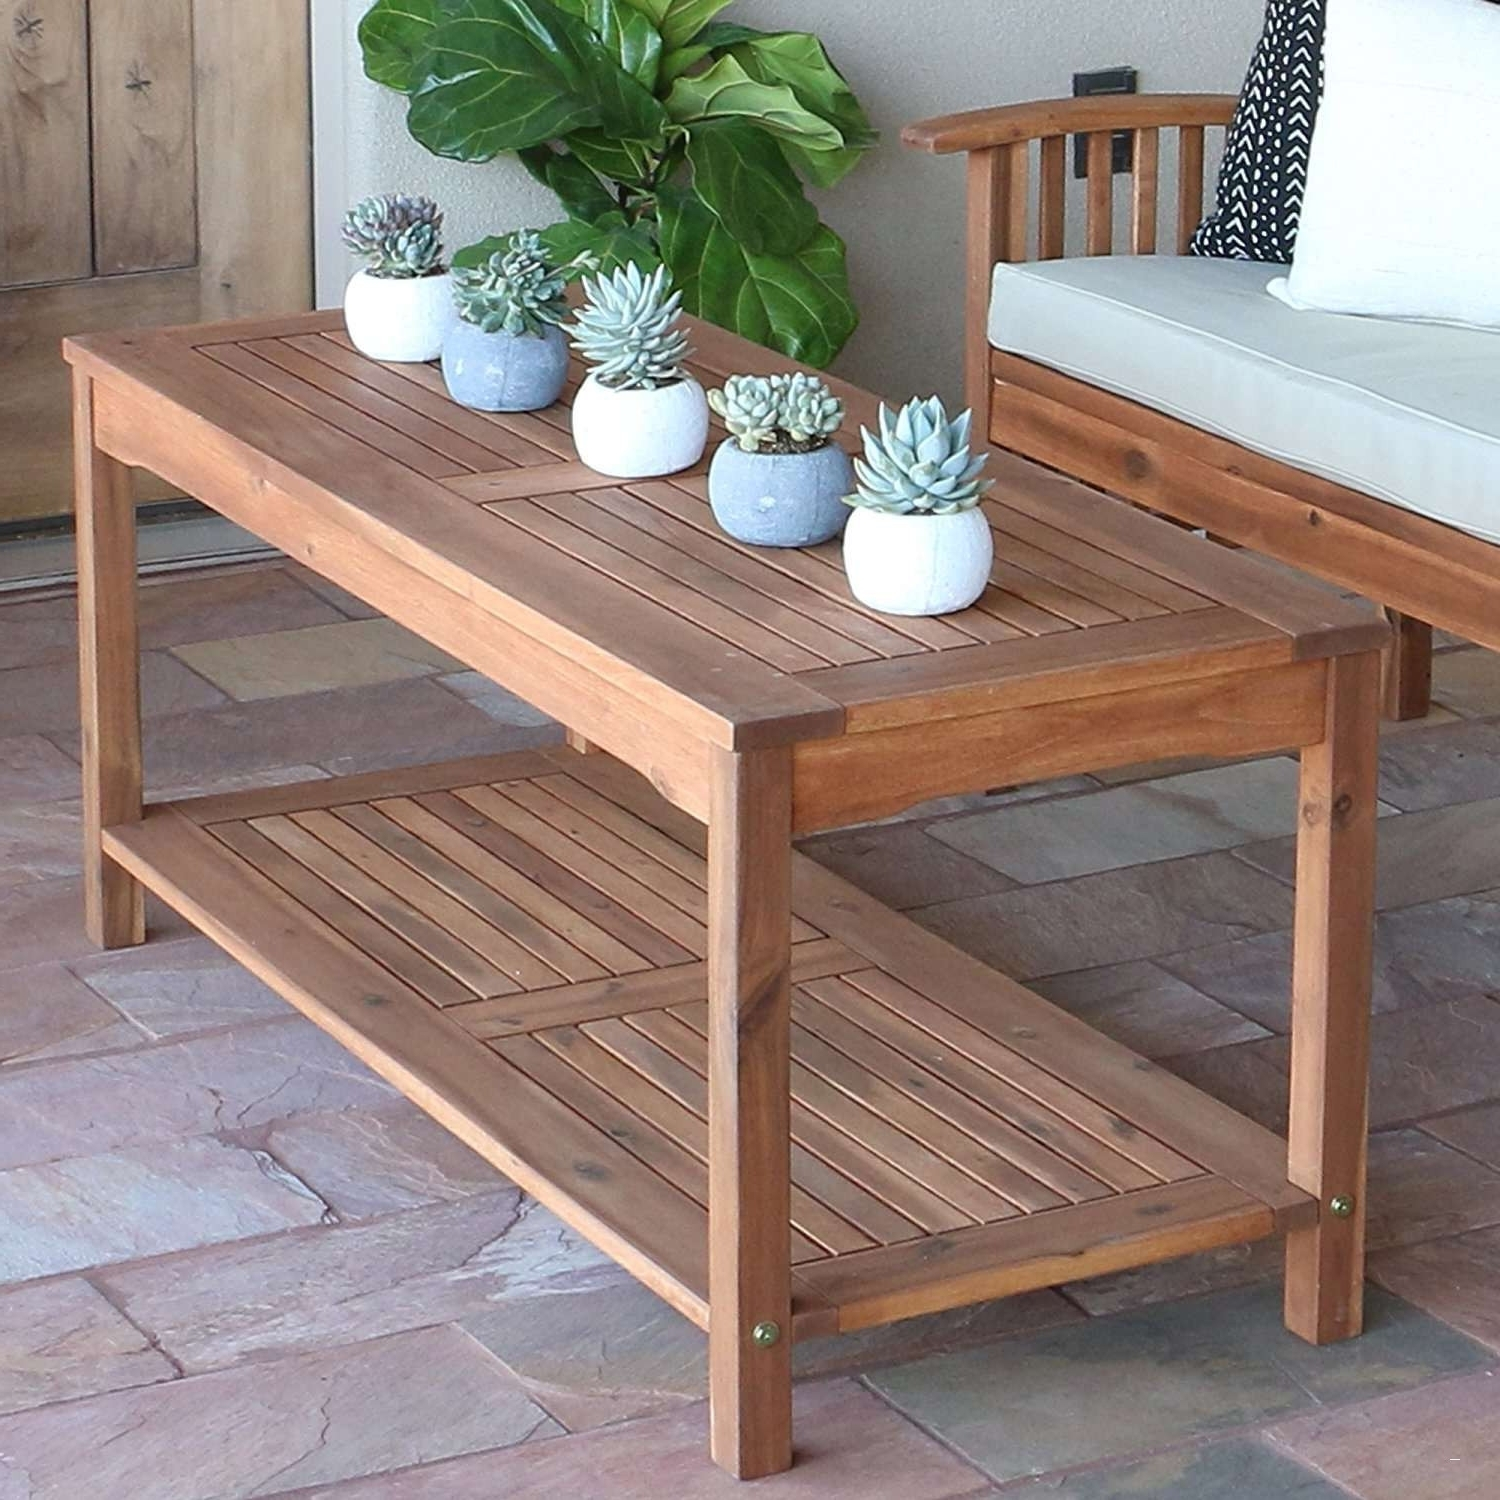 Patio Umbrella Stand Side Tables Within 2018 Umbrella Stand Side Table Home Design Planning With Charming Patio (View 16 of 20)